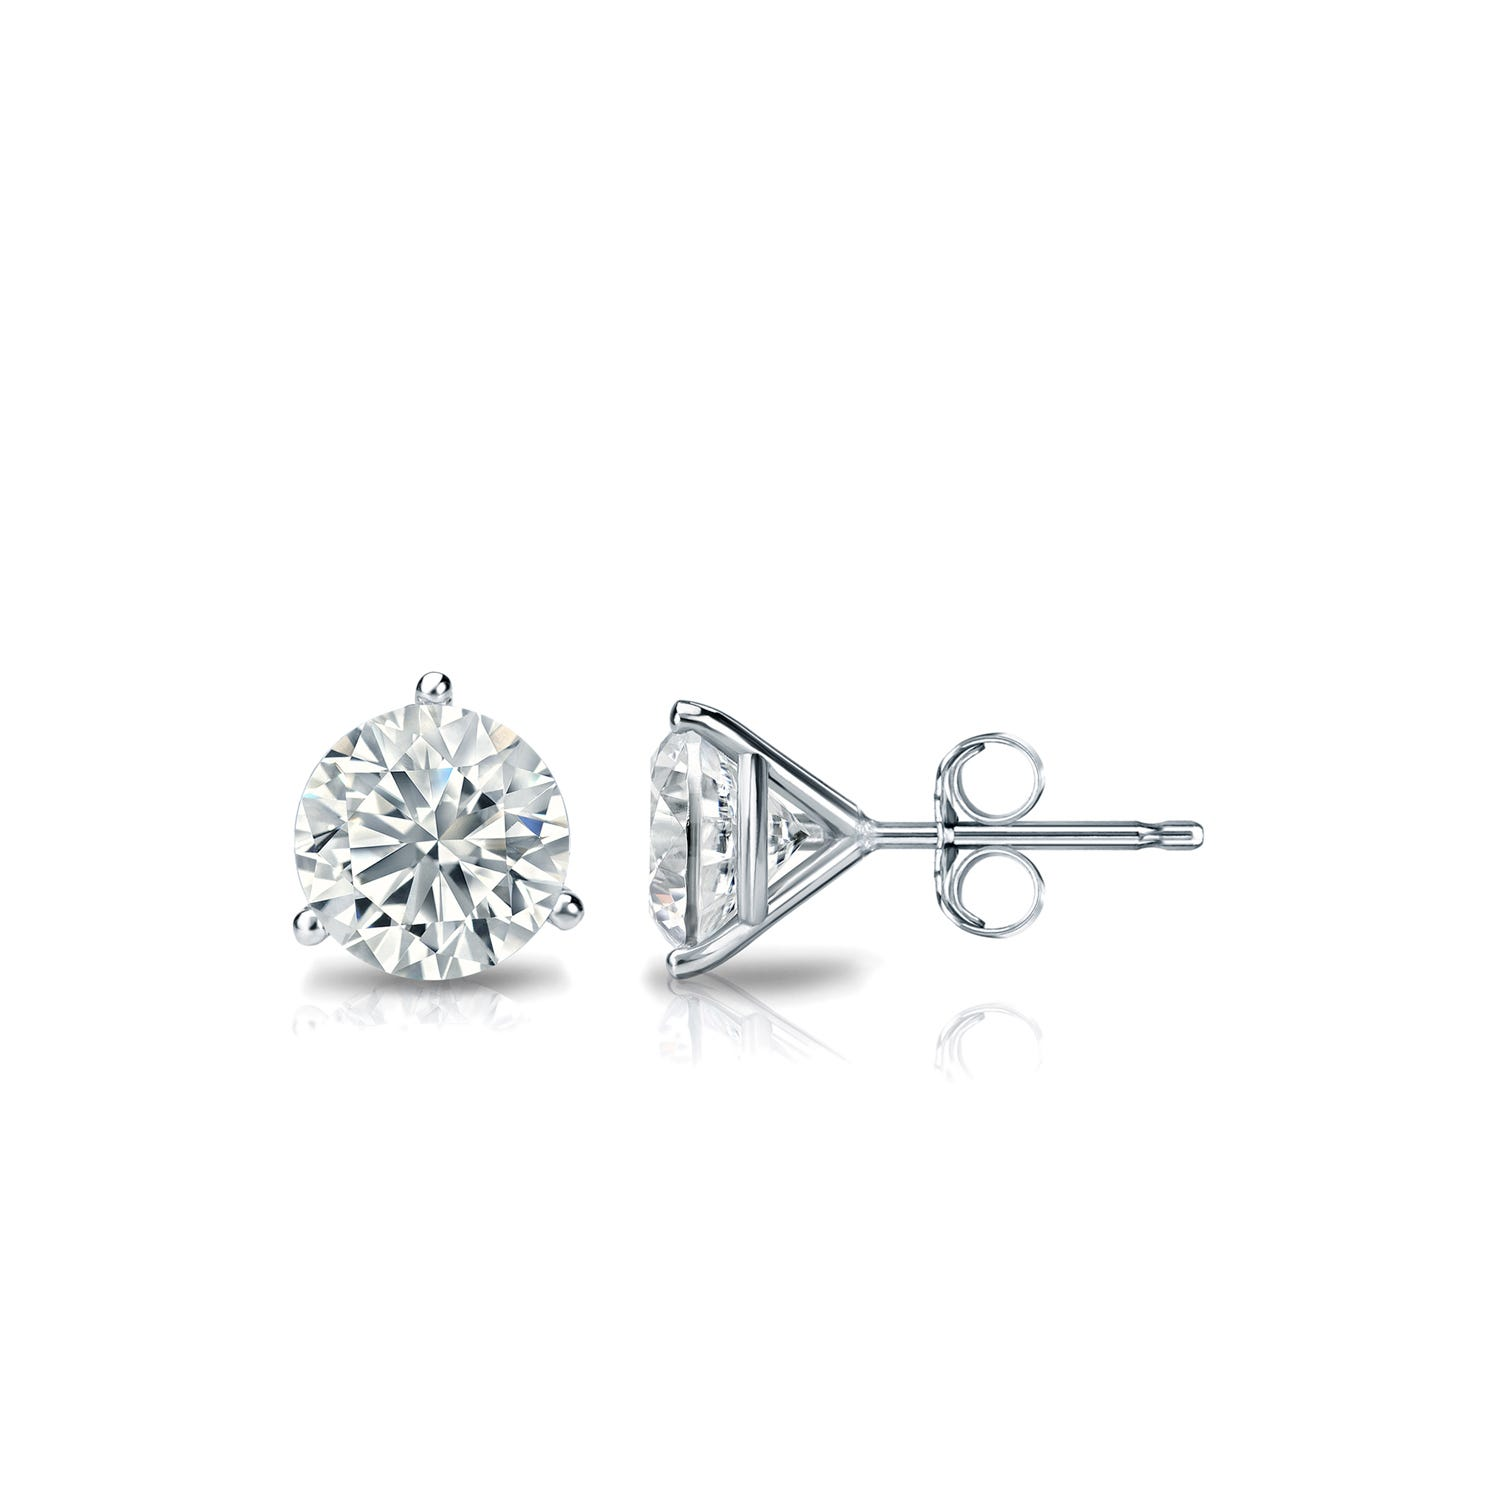 5/8 CTTW Round Diamond Solitaire Stud Earrings IJ I1 in Platinum 3-Prong Setting